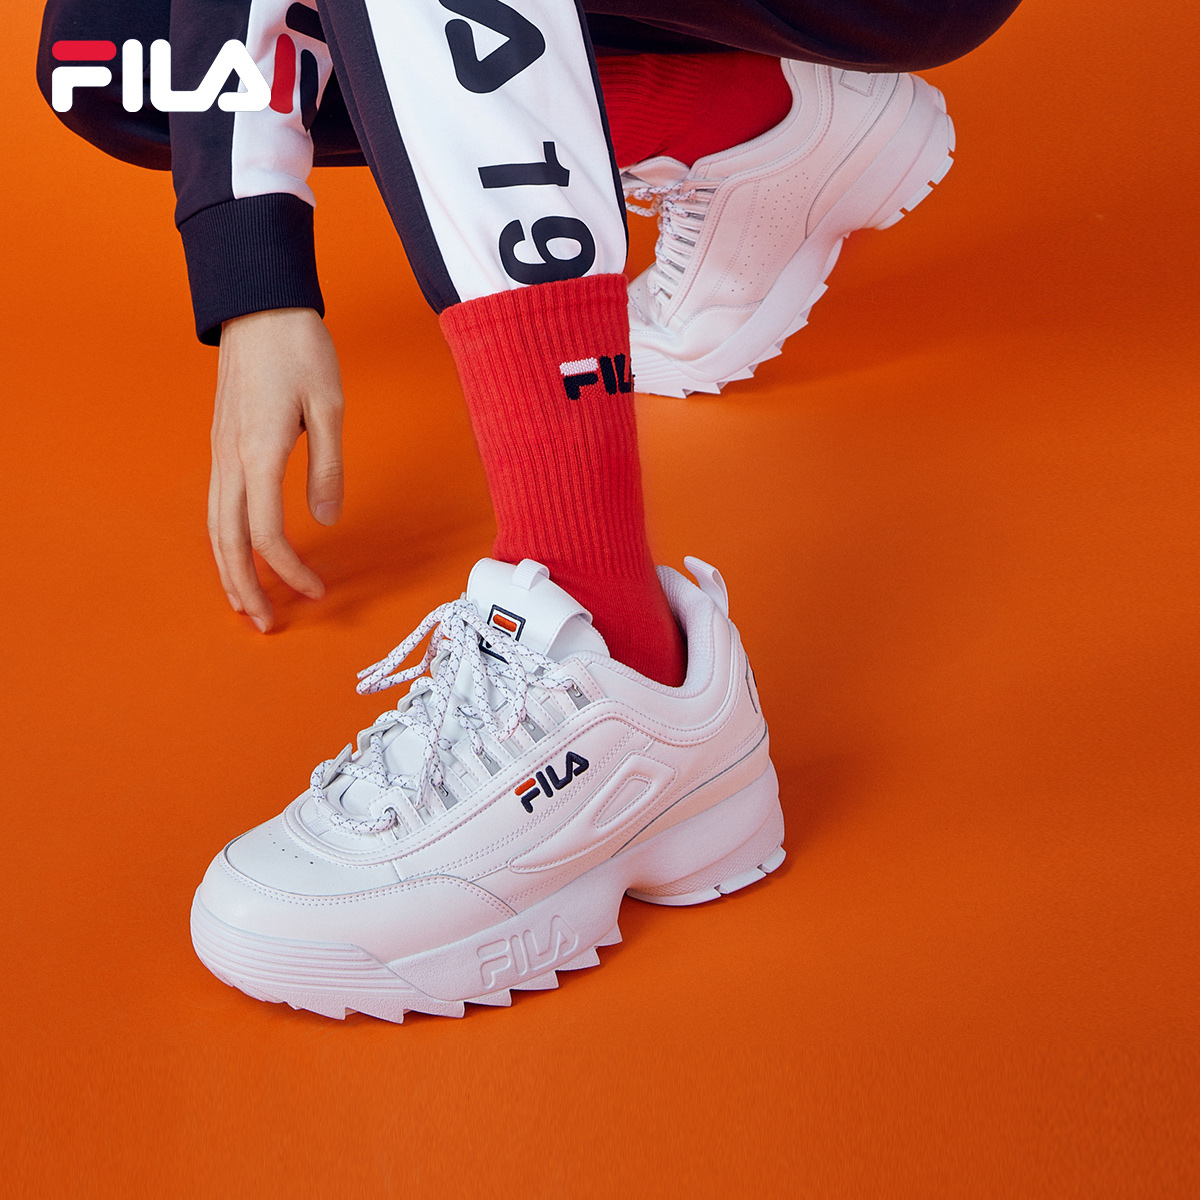 FILA Phile men's shoes 2019 new running shoes stitched with fashion leather sports casual shoes daddy shoes male ins tide